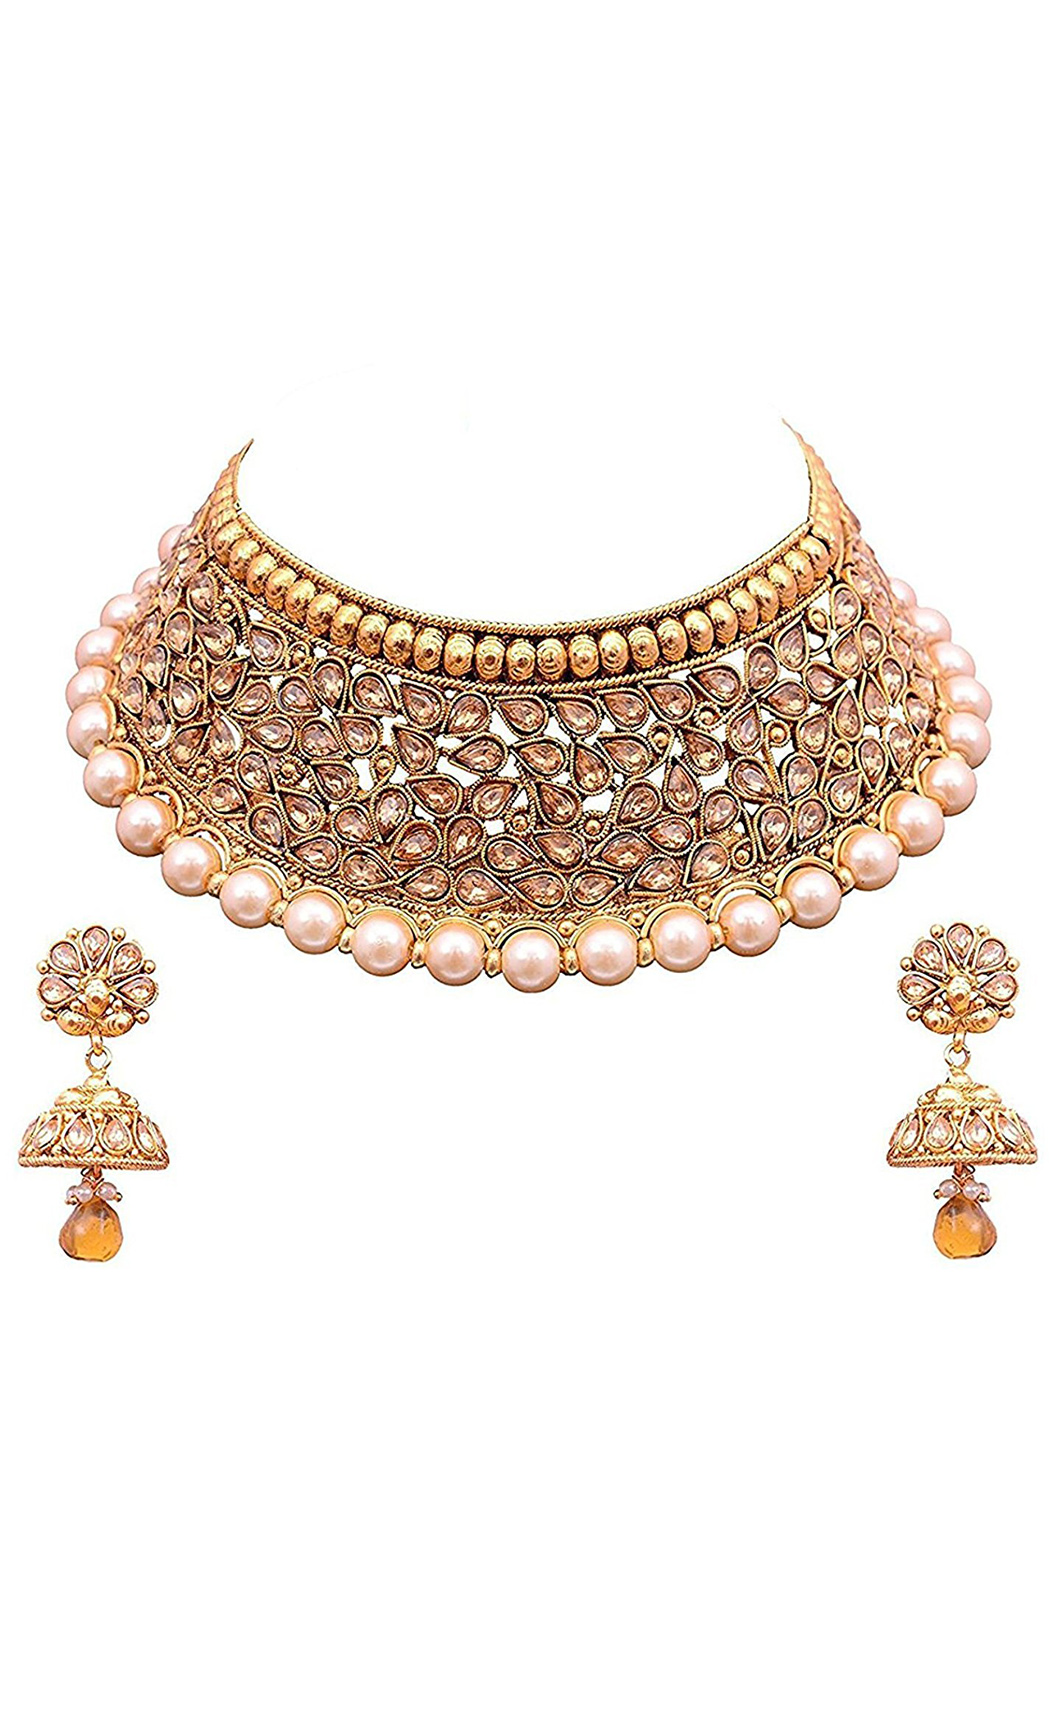 Beige Kundan and Pearl Choker Set with Earrings | Indian Bridal Jewellery Sets with Price | Buy Online